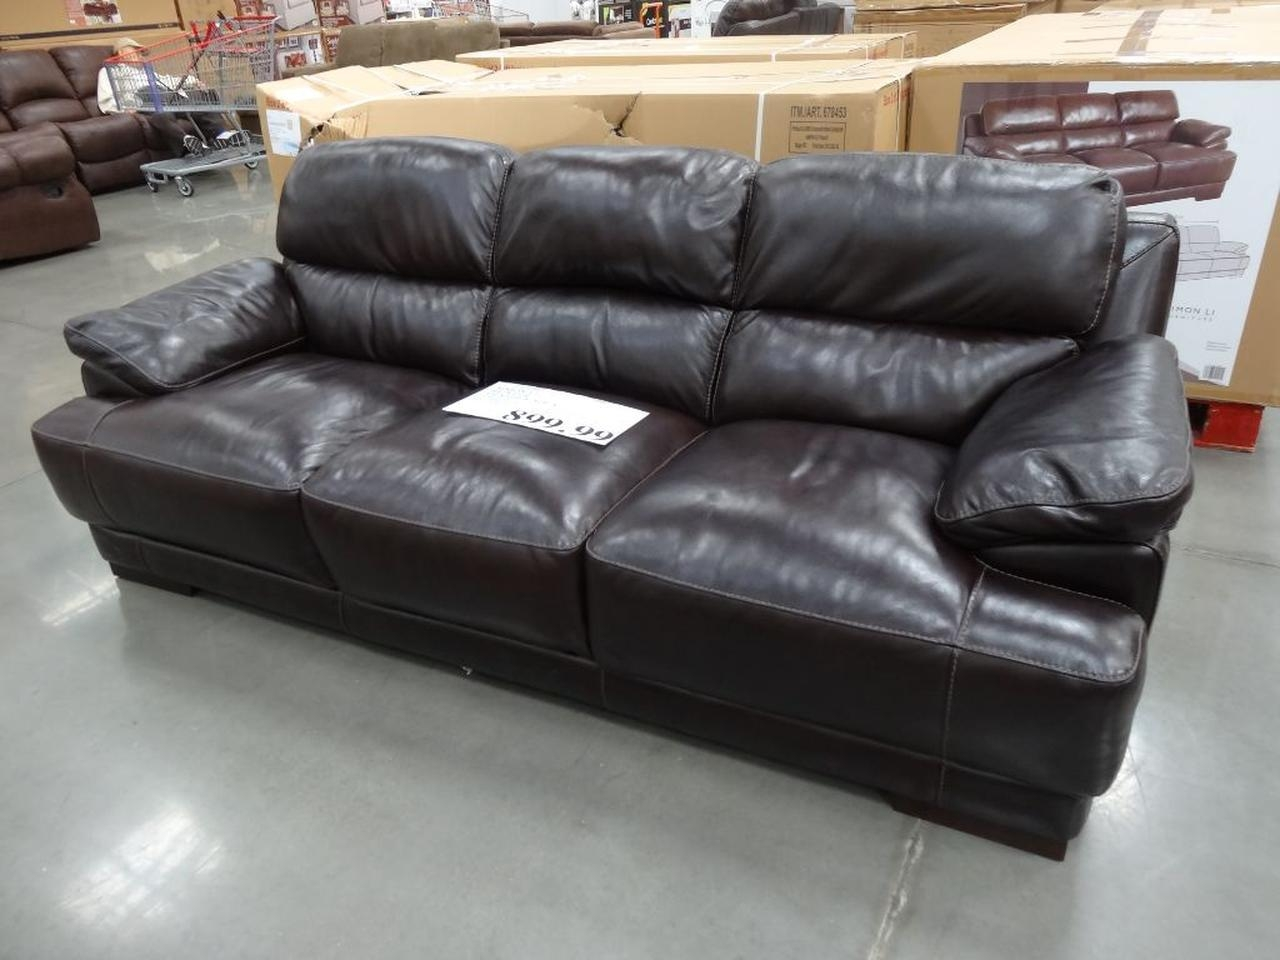 Furniture: Costco Sofa Bed | Target Futon | Euro Lounger Pertaining To Euro Lounger Sofa Beds (View 8 of 20)